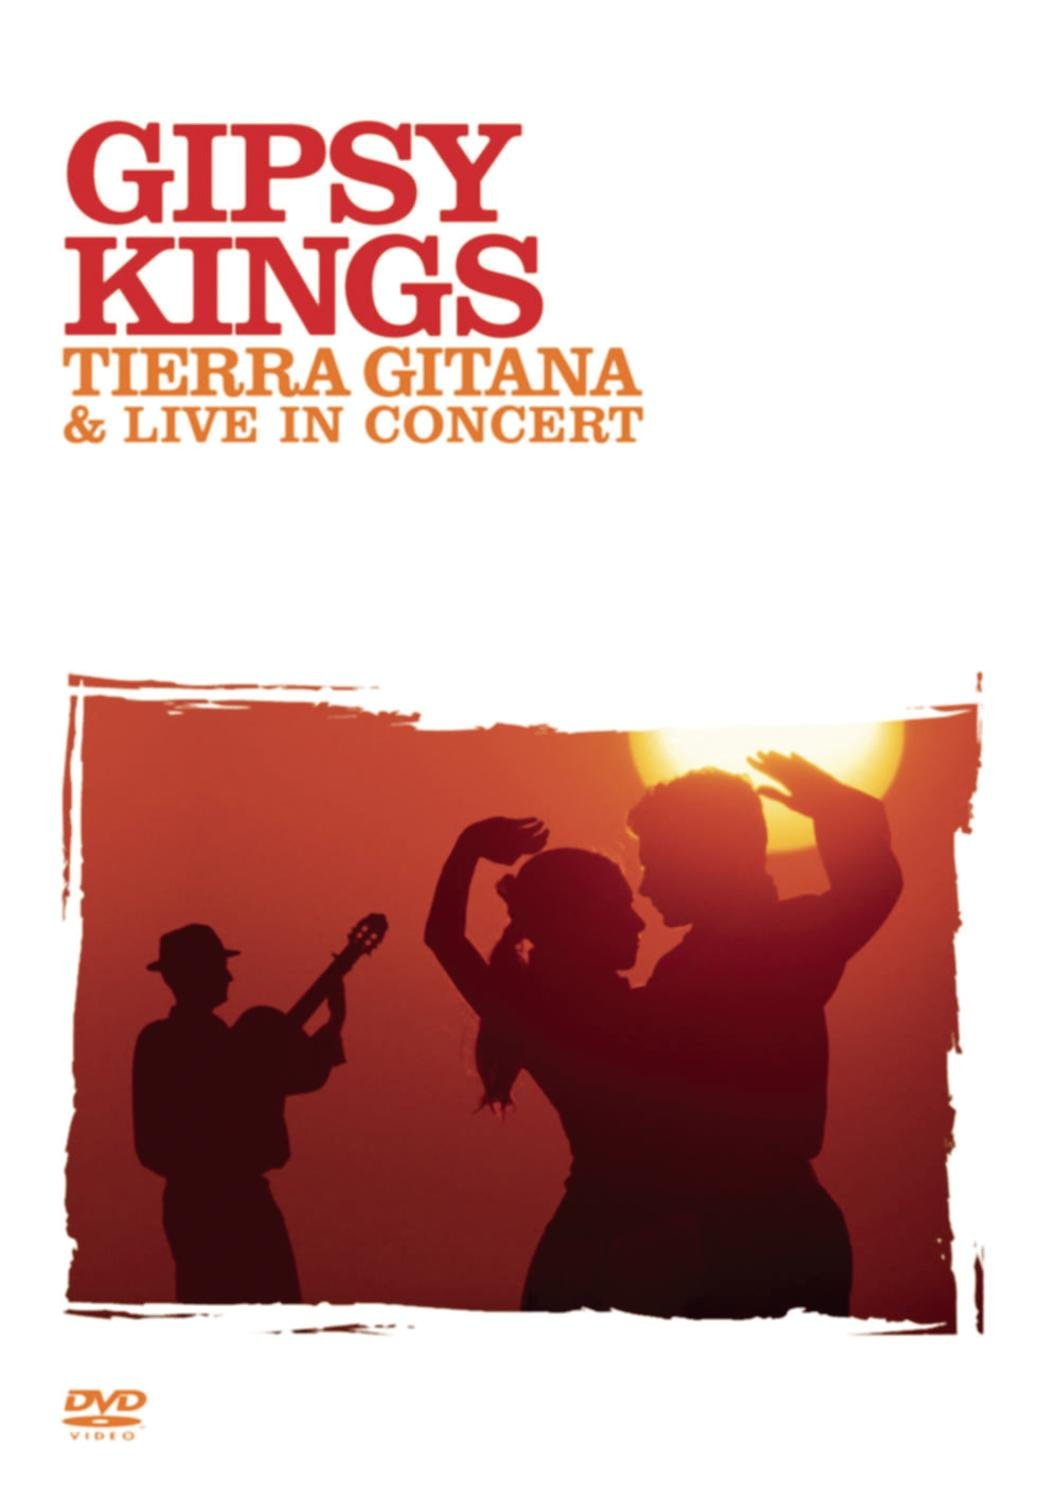 Gipsy Kings - Tierra Gitana & Live in Concert by Music Video Dist